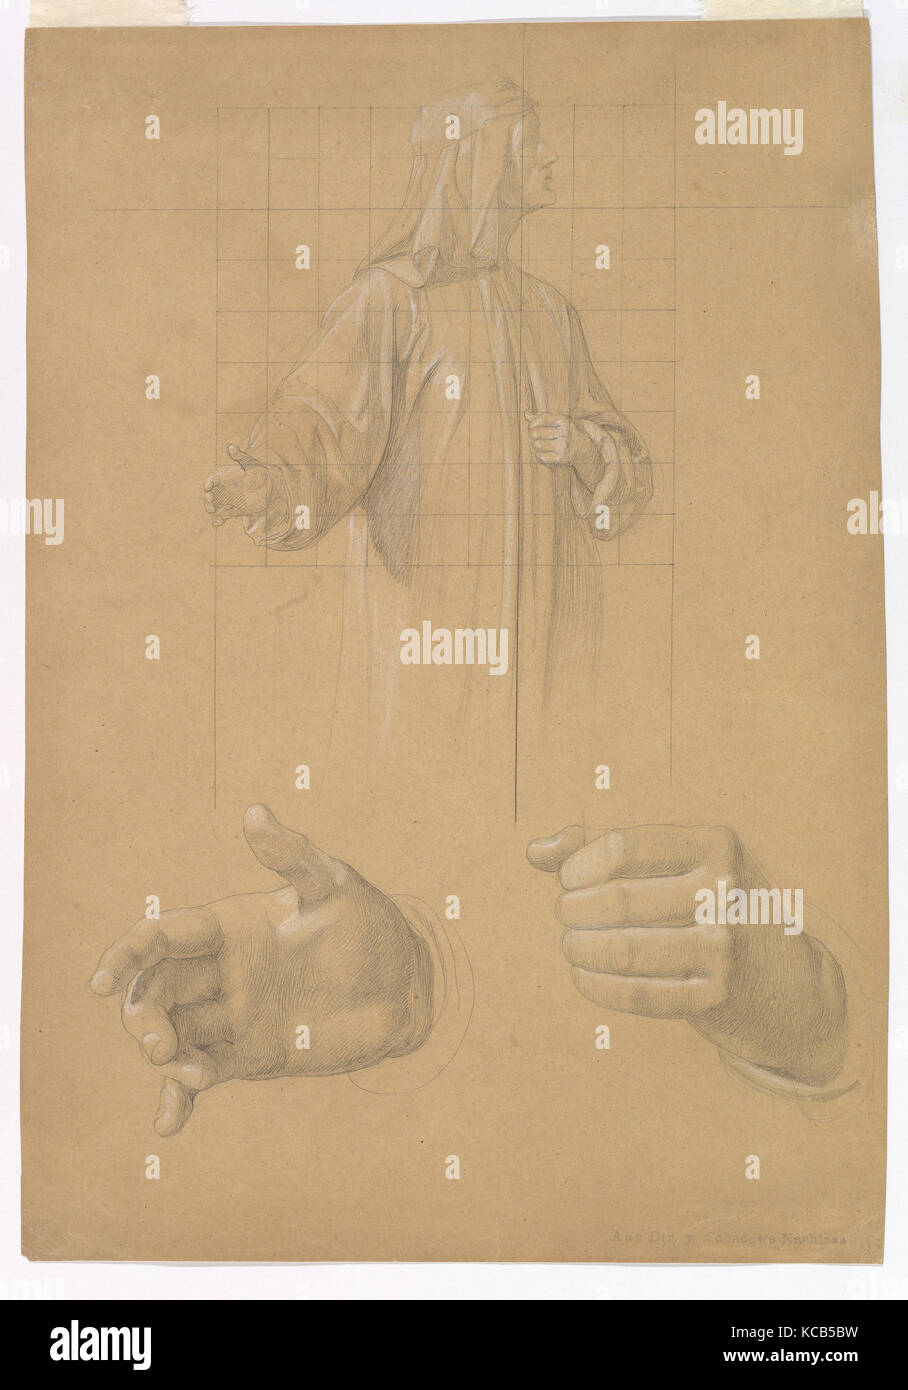 Study of a Standing Man with Headcloth and Two Studies of his Hands, Wilhelm Schadow, early to mid-19th century - Stock Image